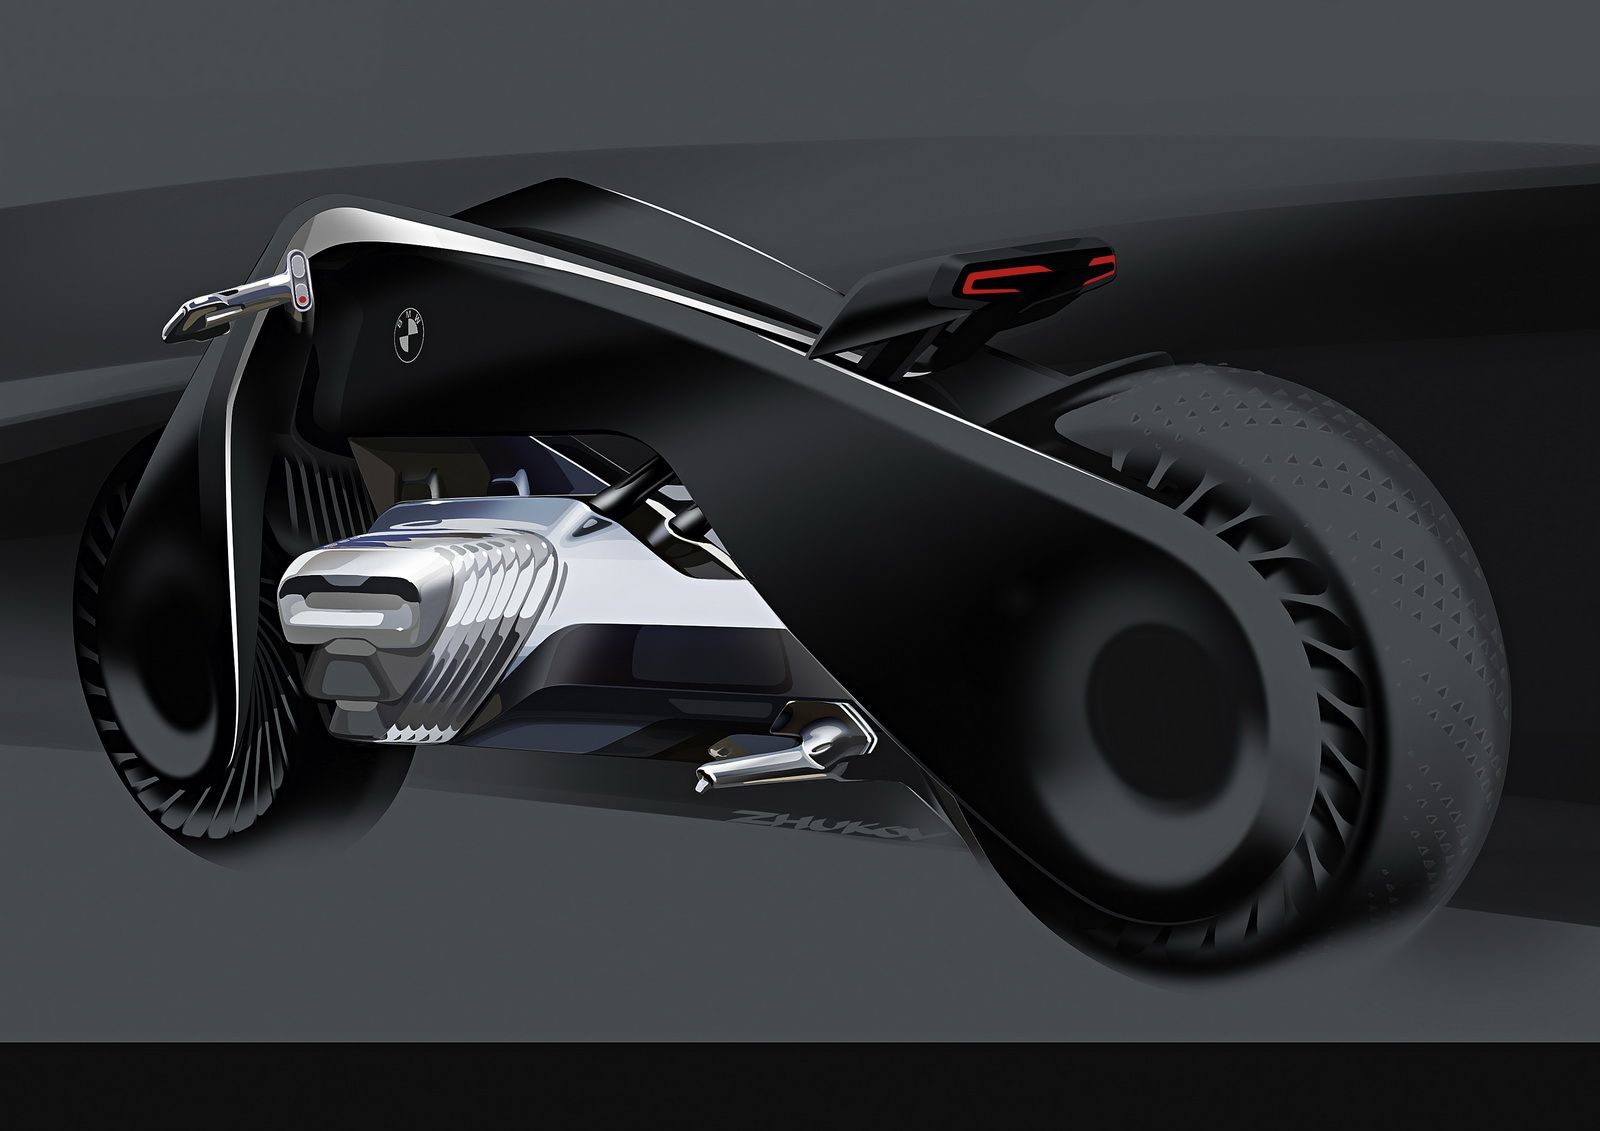 Bmw S Vision Next 100 Bike Concept Looks Like A Batpod From The